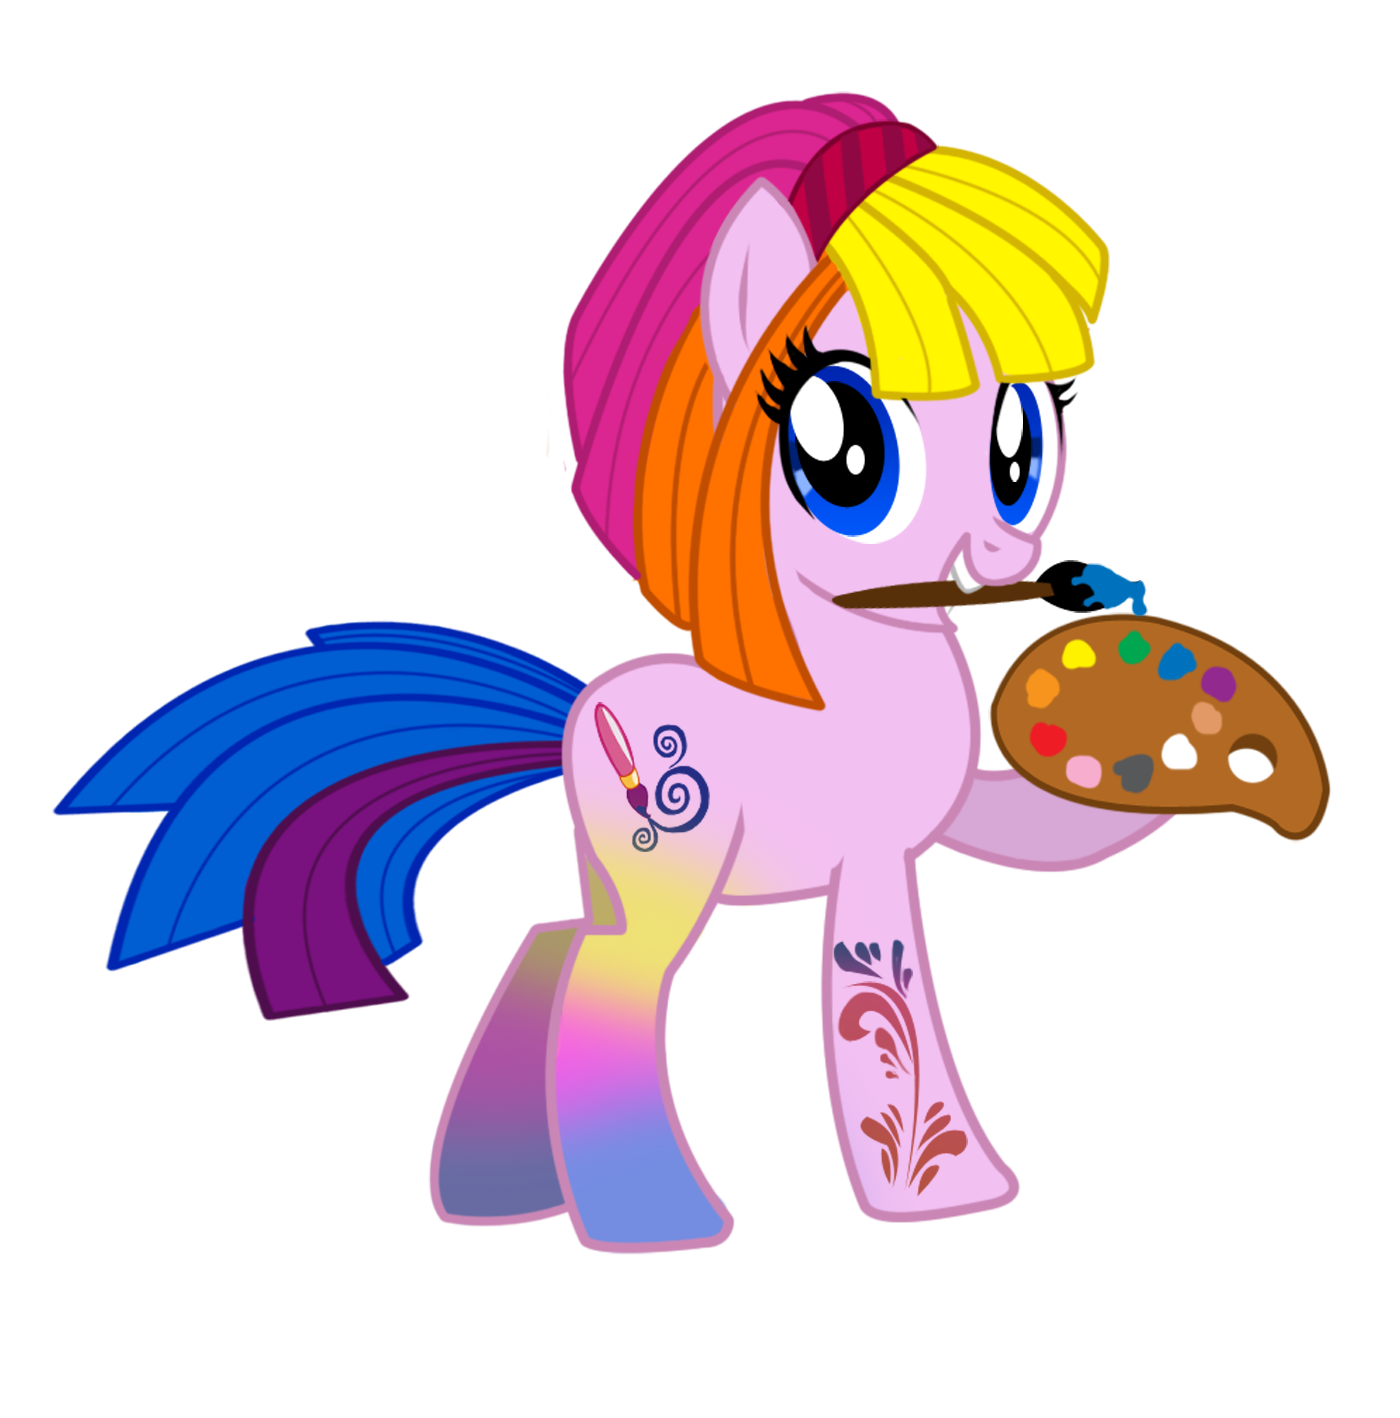 Ausmalbilder My Little Pony Discord : G3 Toola Roola My Little Pony In G4 Style By Pinkanon Deviantart